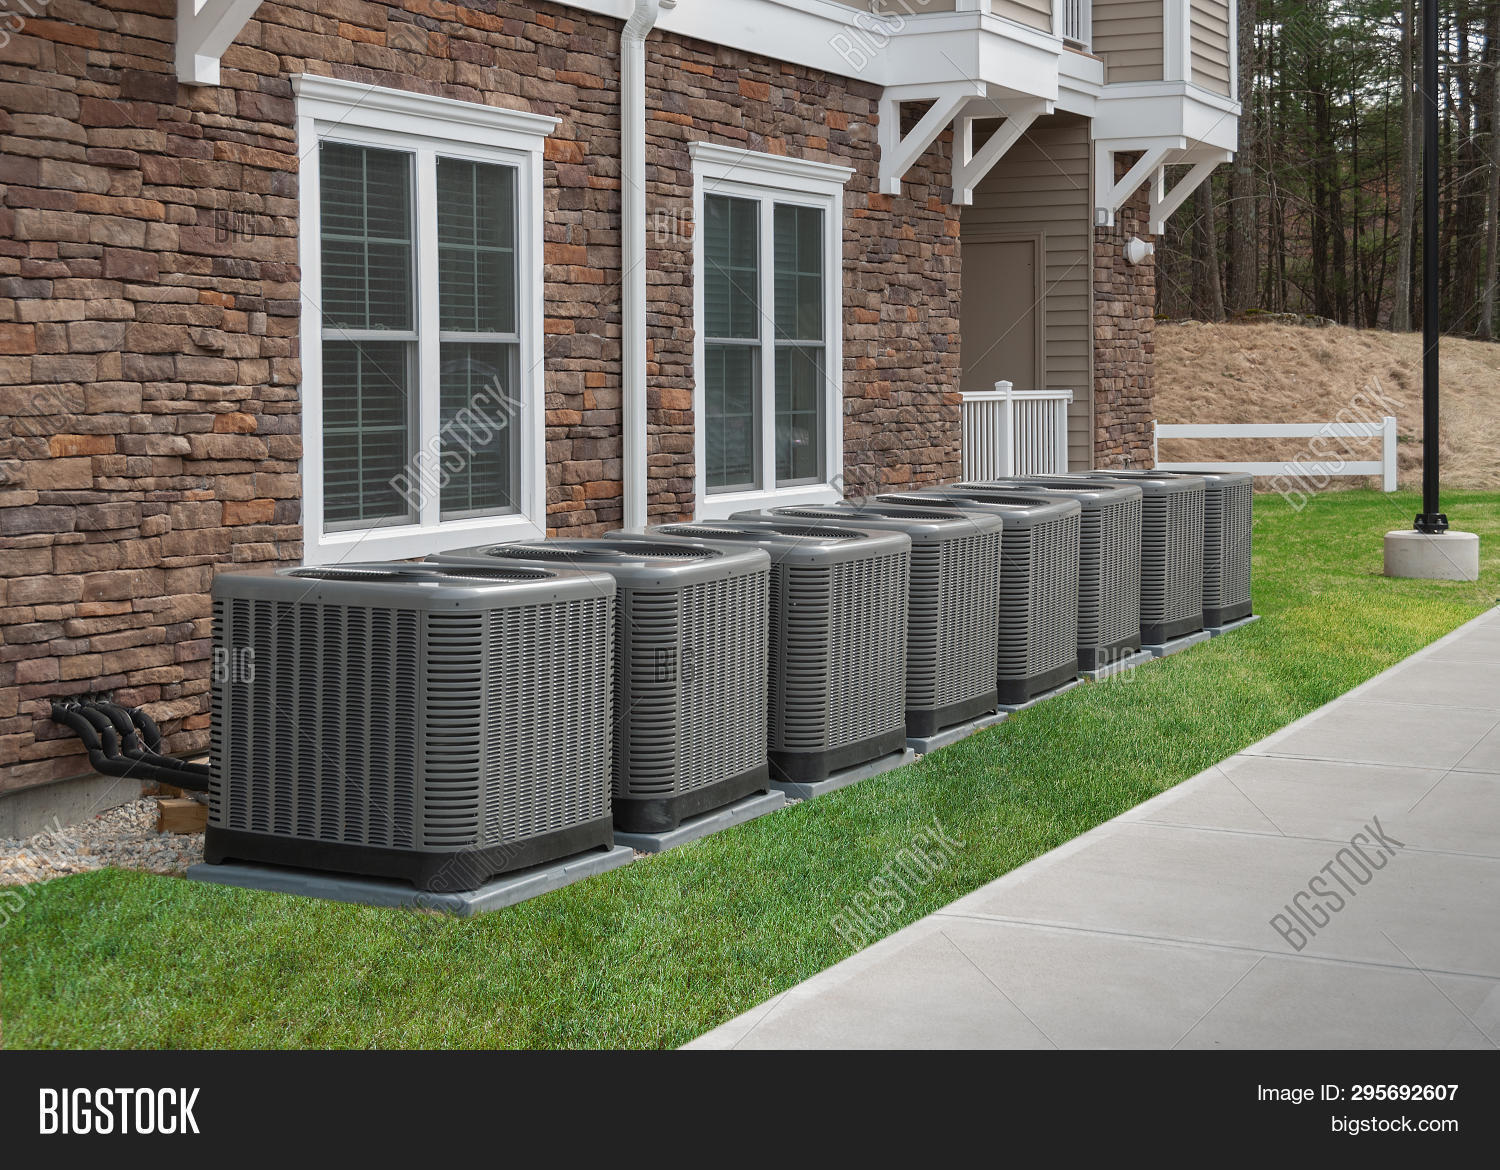 Heating and air conditioning units used to heat and cool an apartment complex